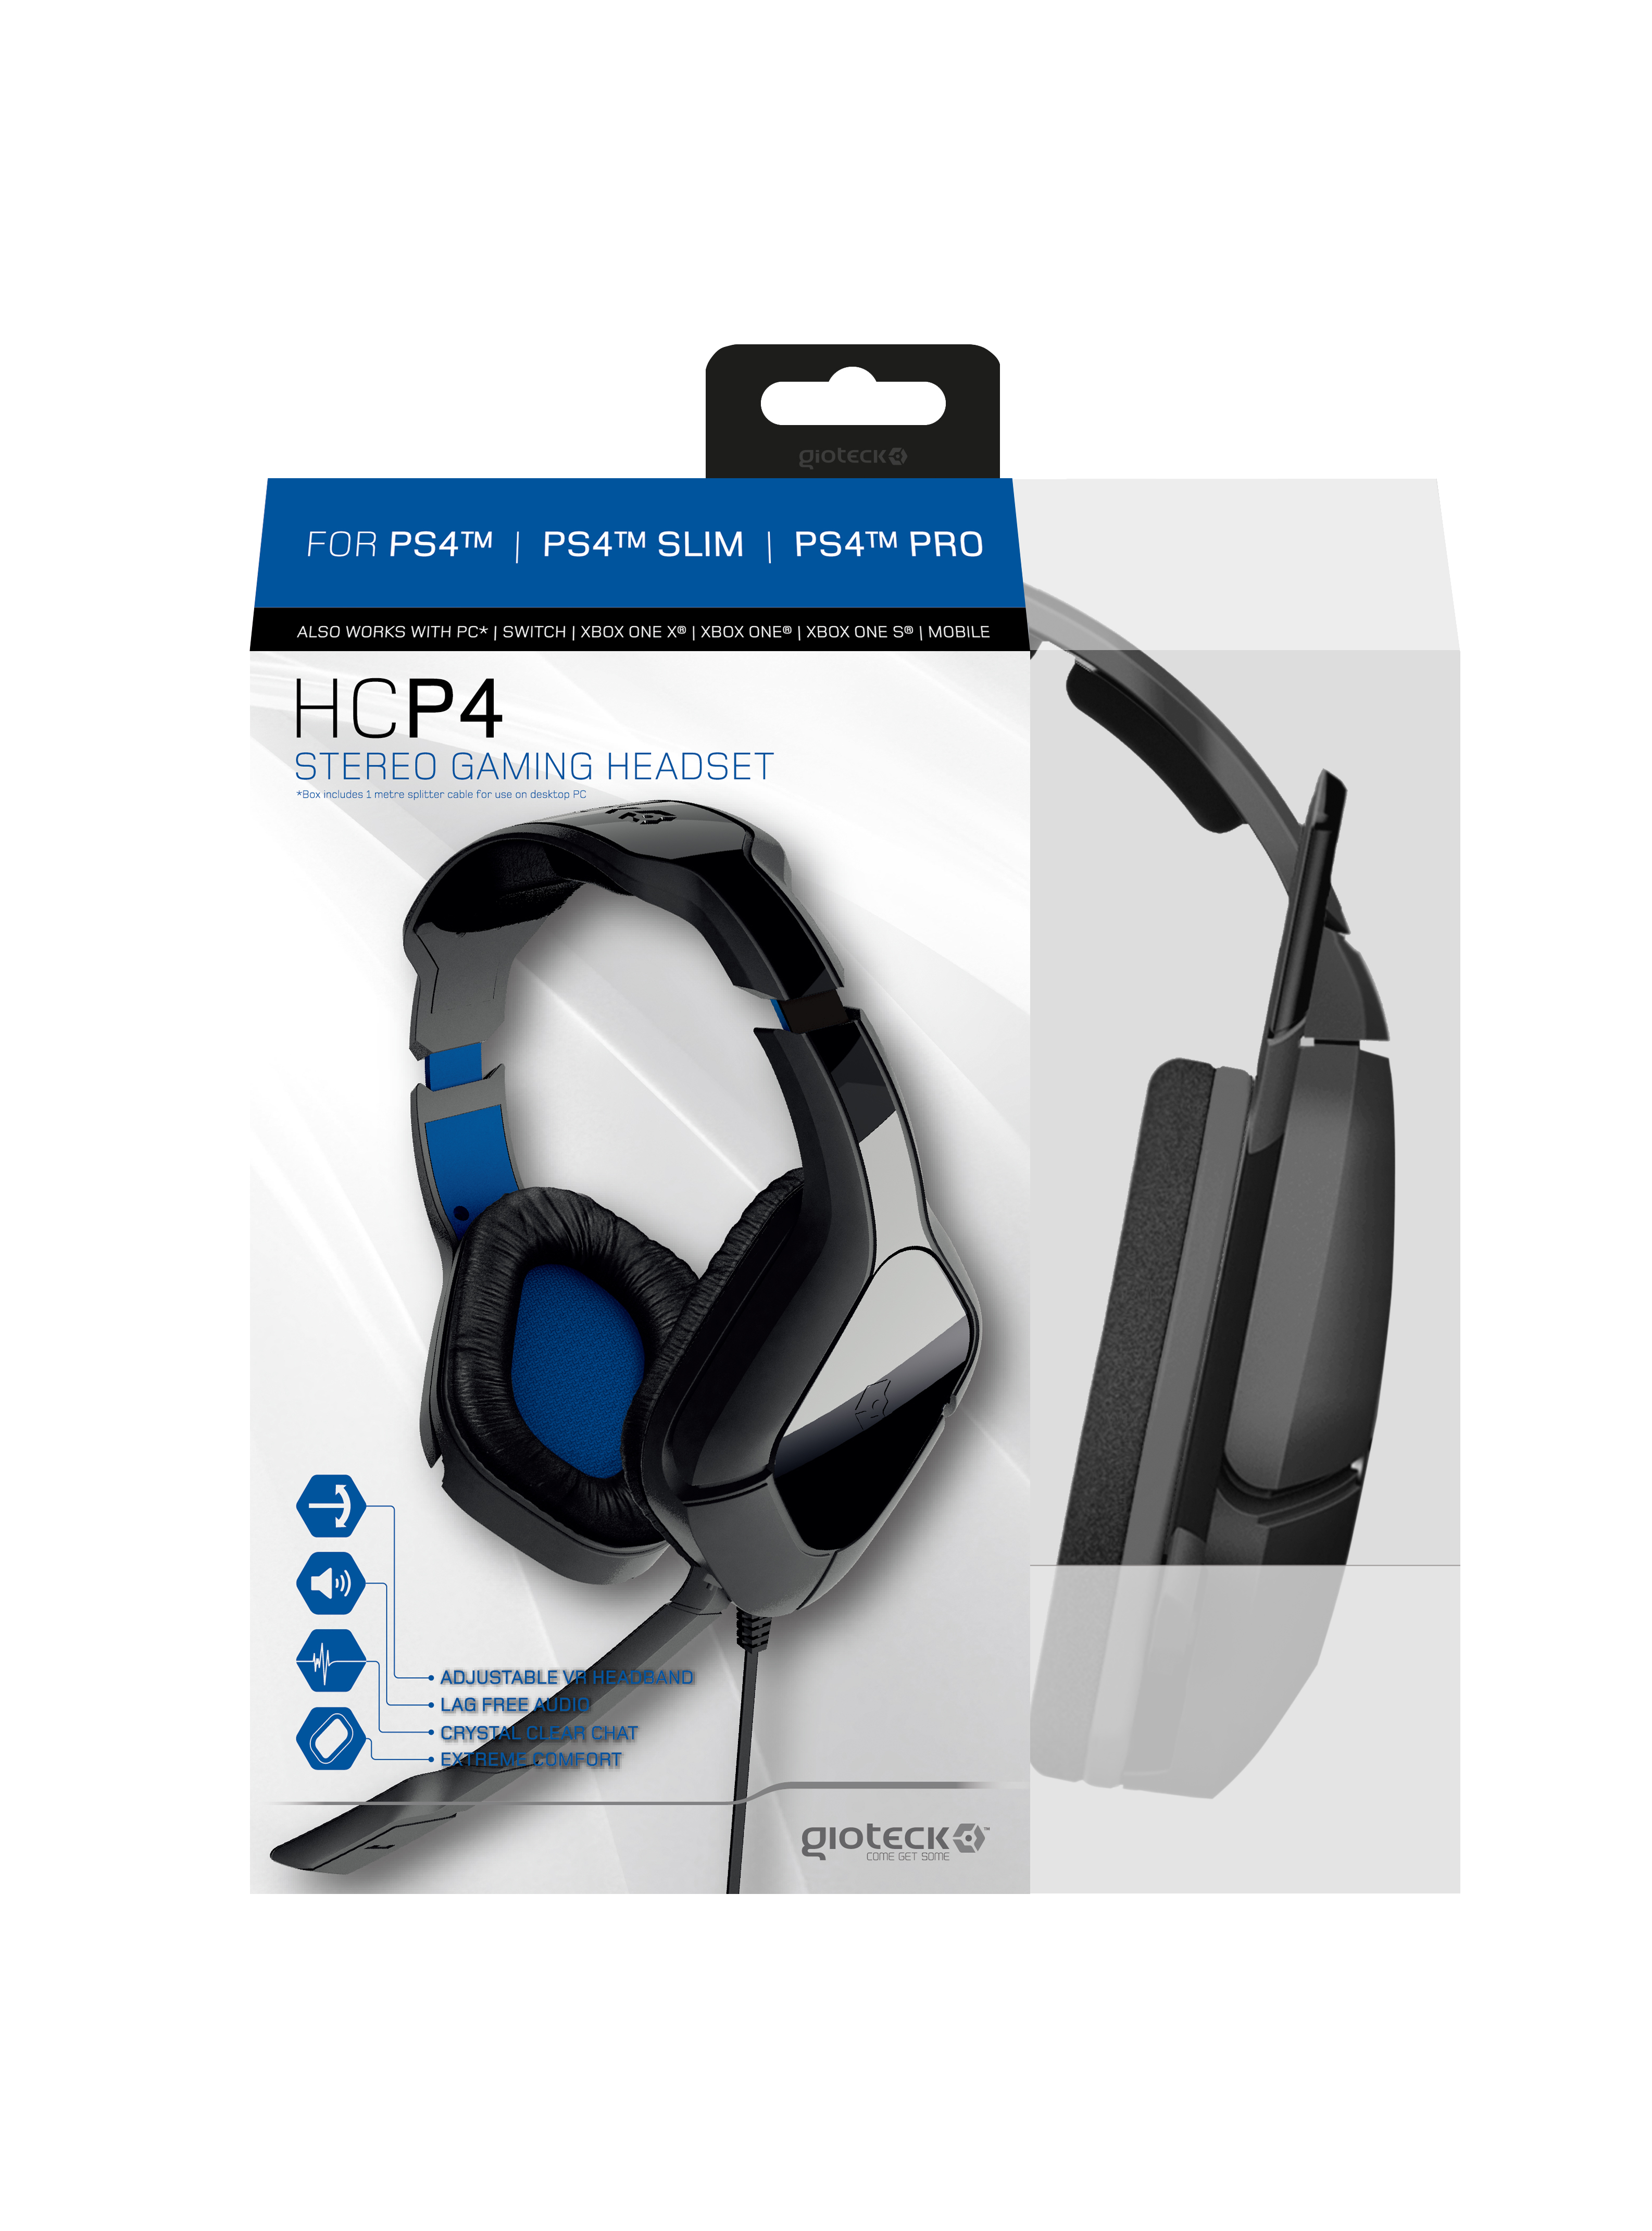 Gioteck Hcp4 Gaming Headset Nordic Game Supply Basic Mobile To Pc Cable Release Date Out Now Type Headsets